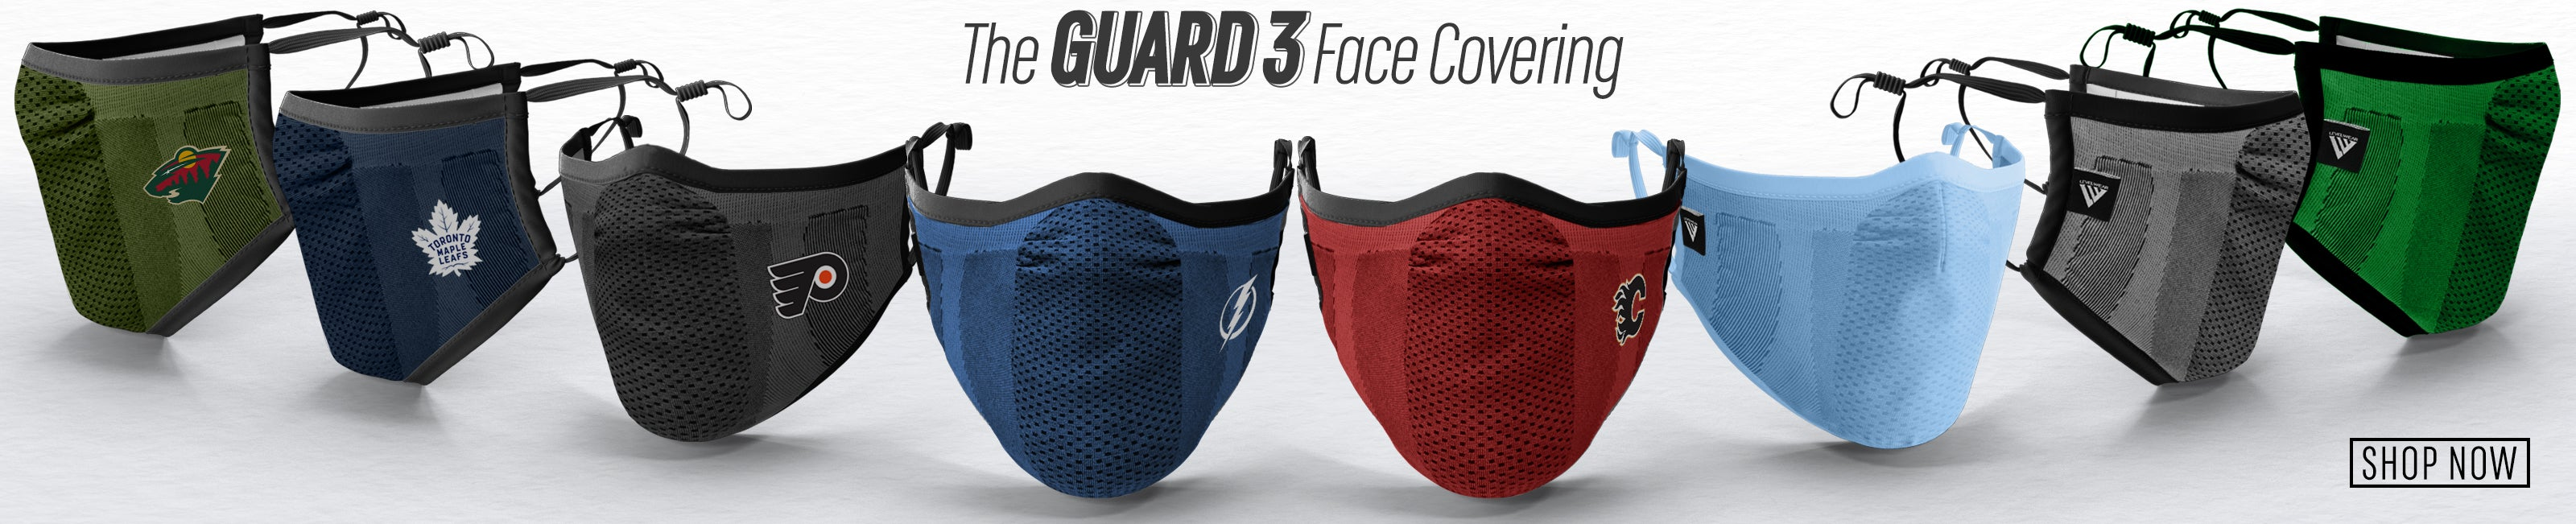 The Guard 3 Face Covering